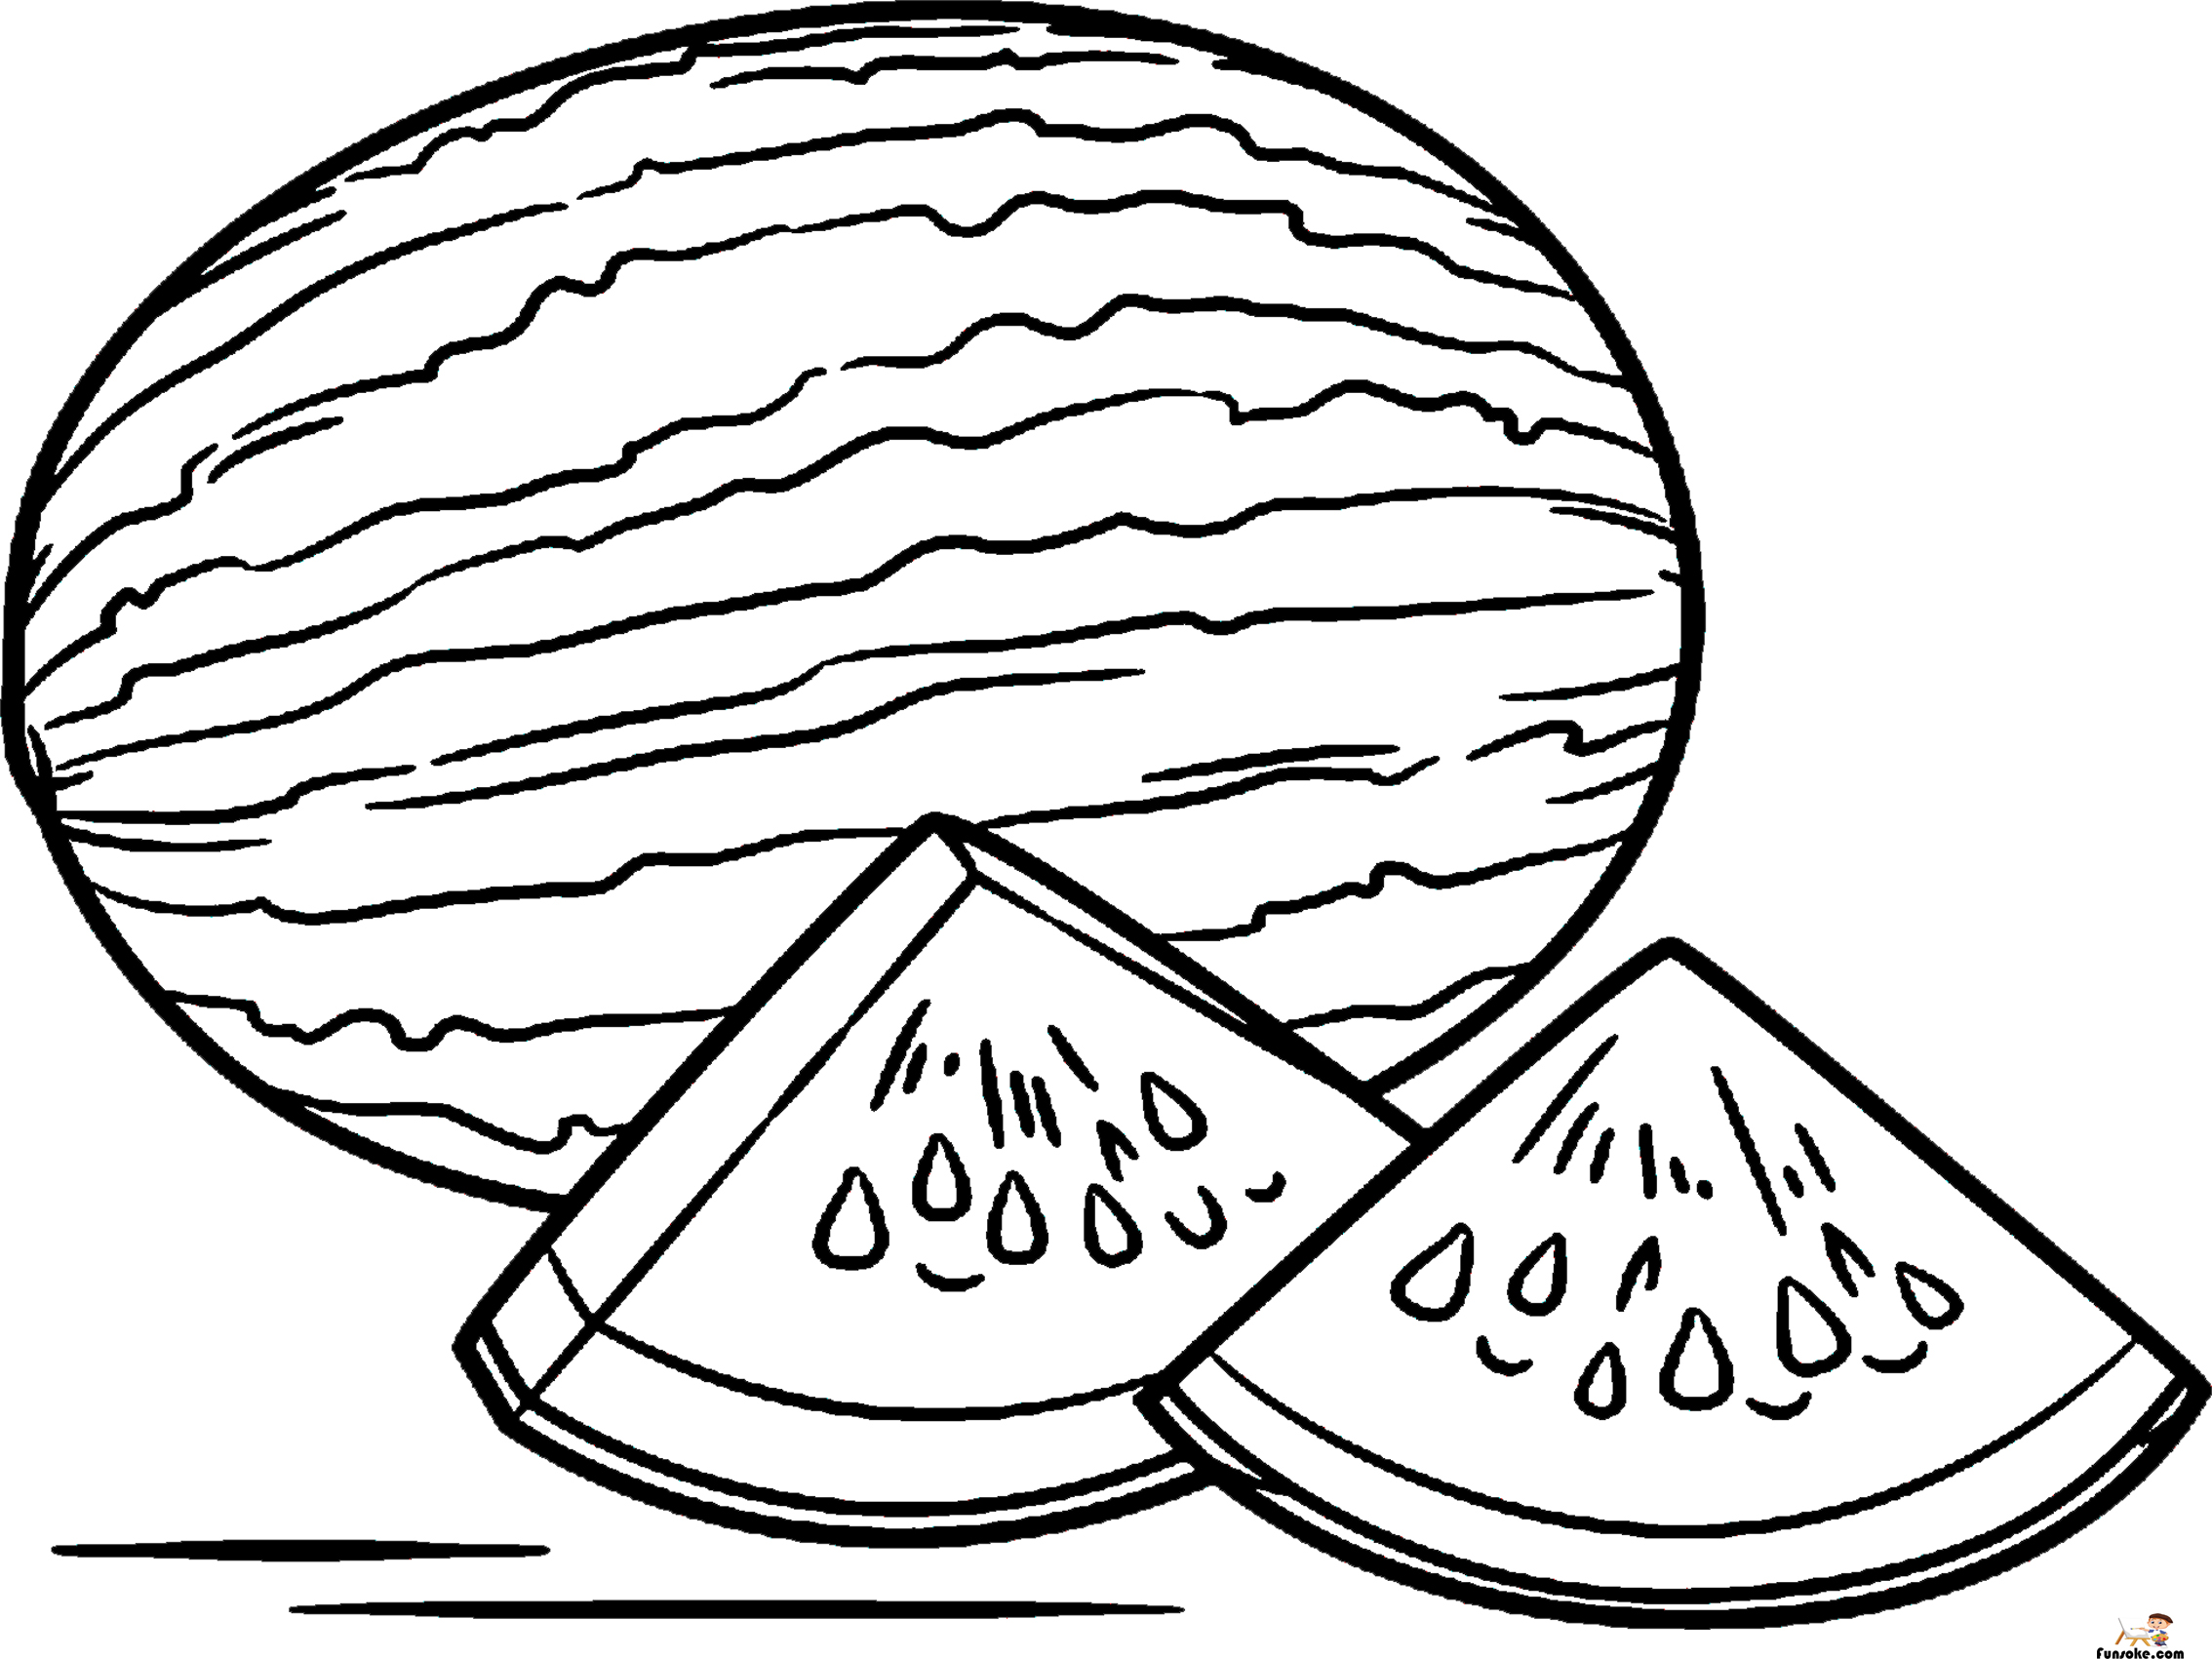 coloring pages watermelon watermelon coloring pages download and print watermelon coloring pages watermelon 1 1